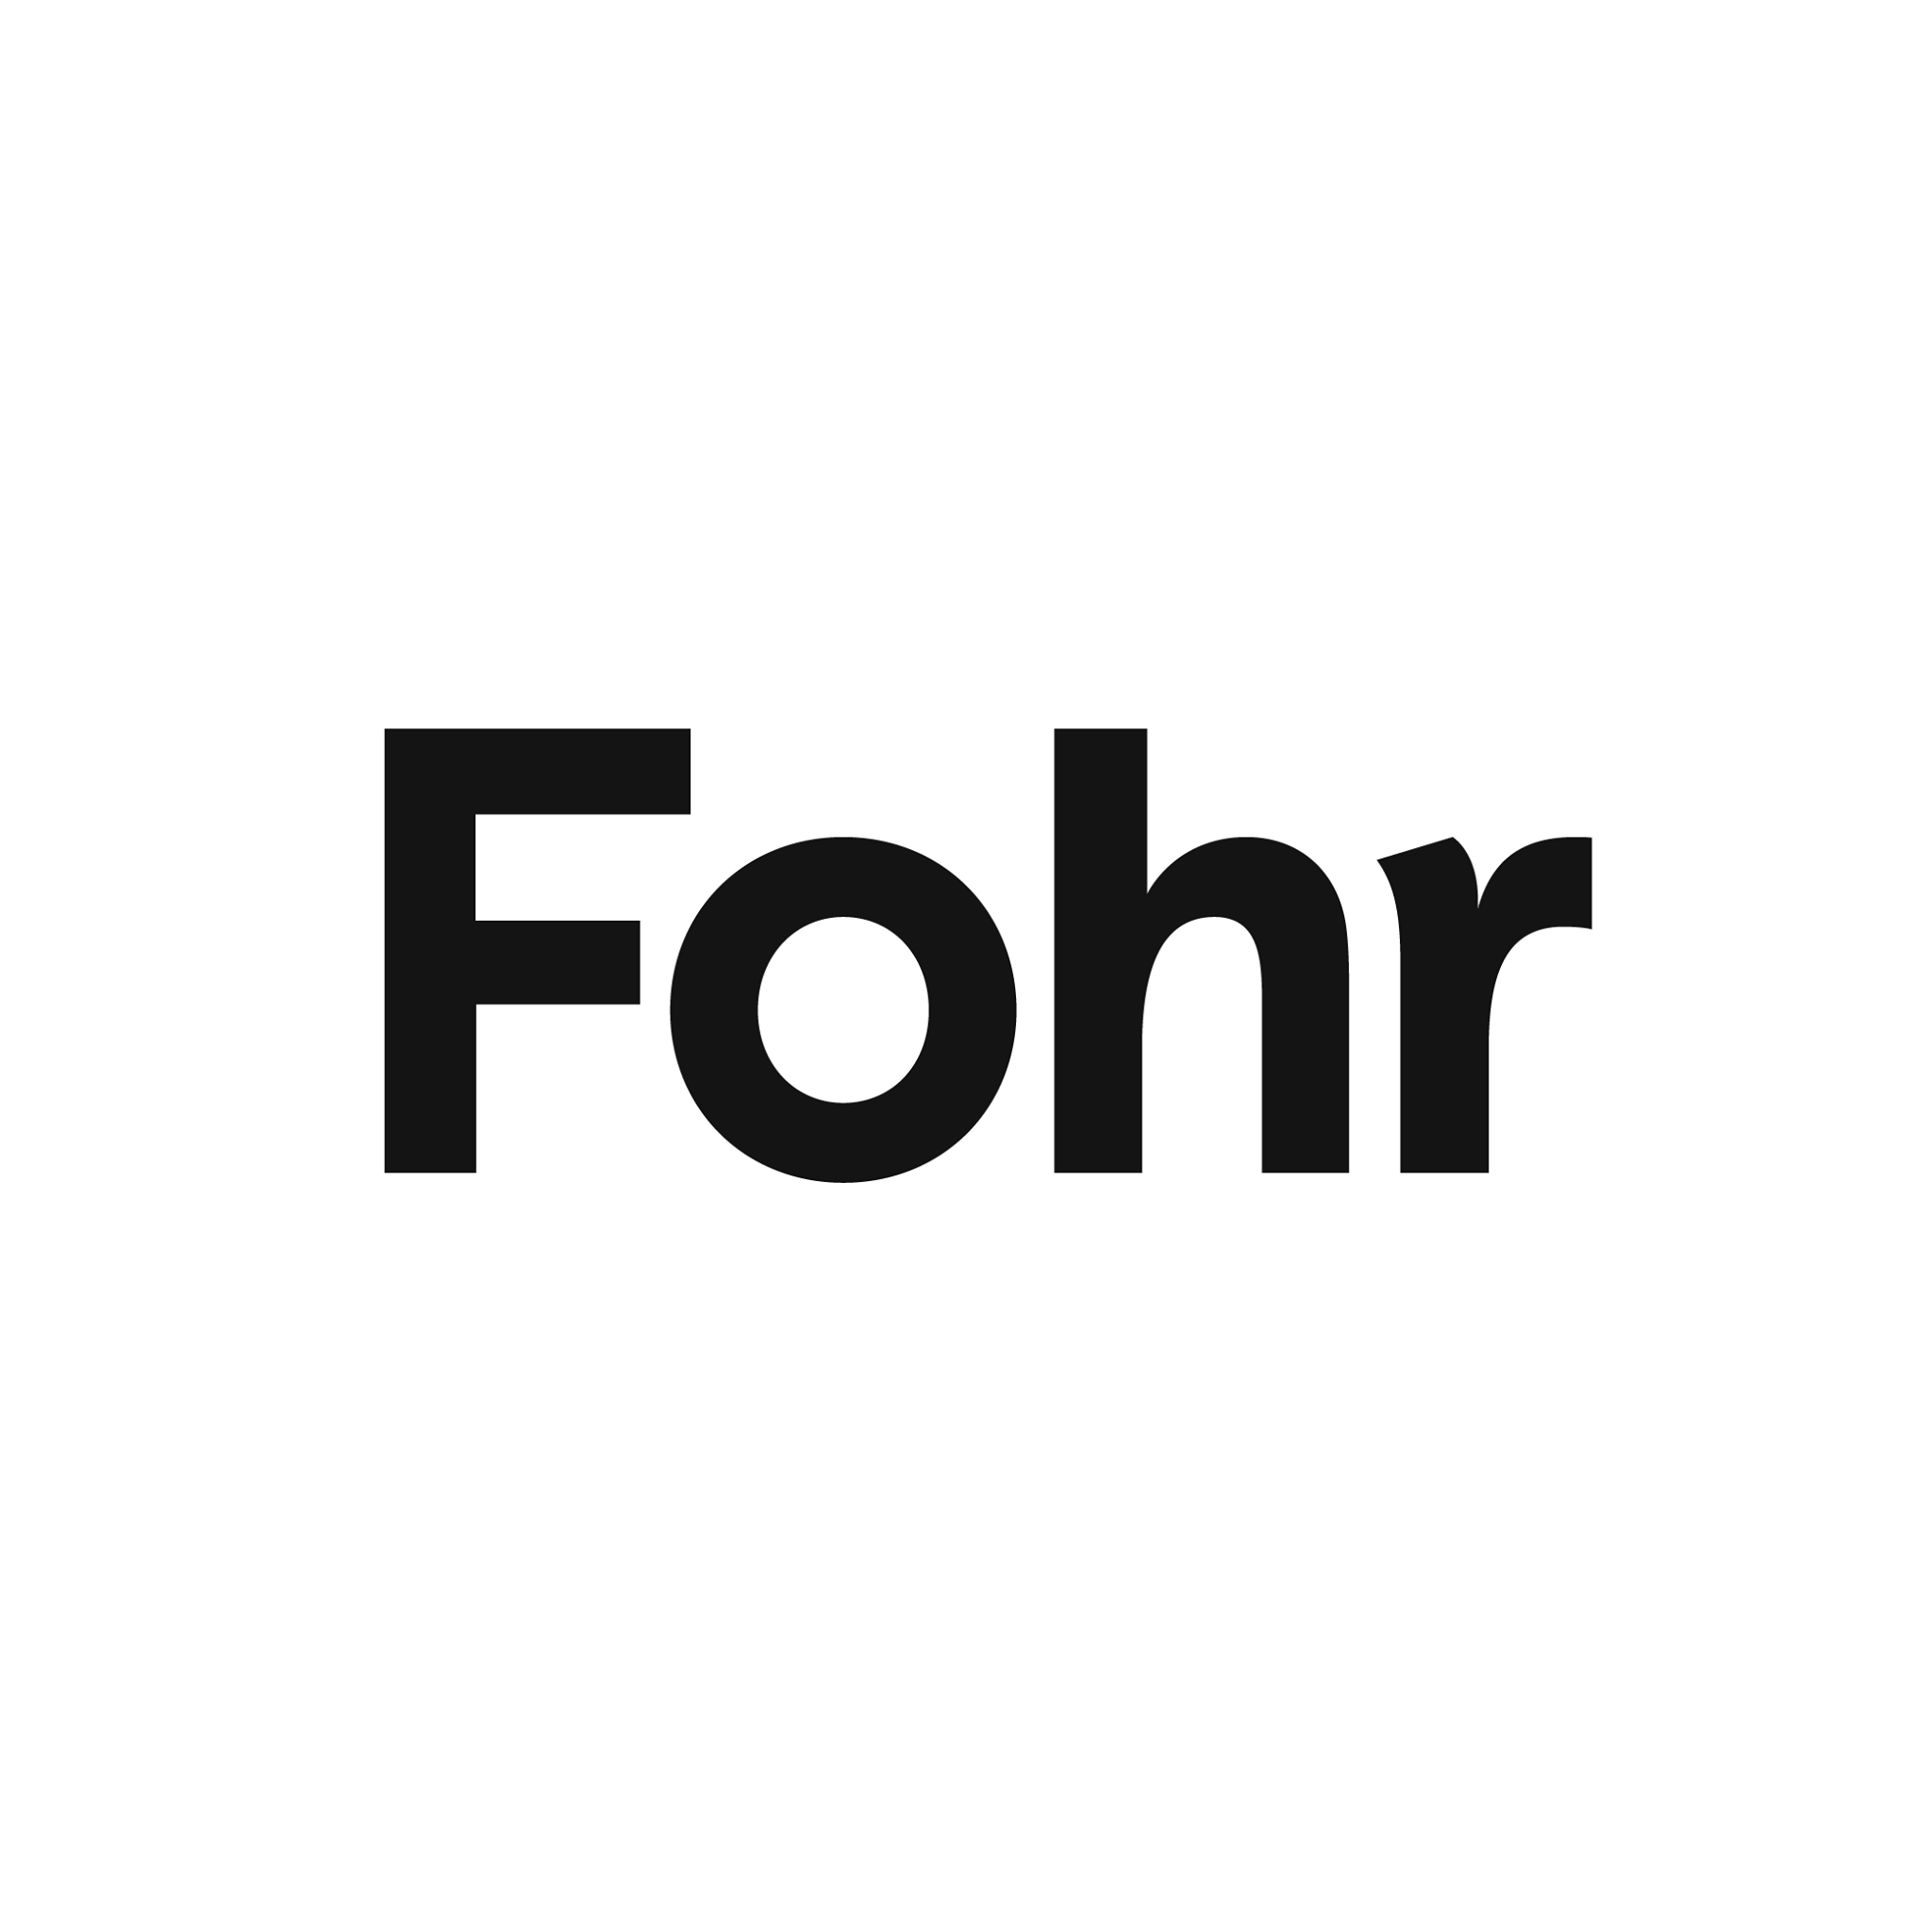 https://wordplayagency.com/wp-content/uploads/2019/03/Fohr-Card-Logo.png